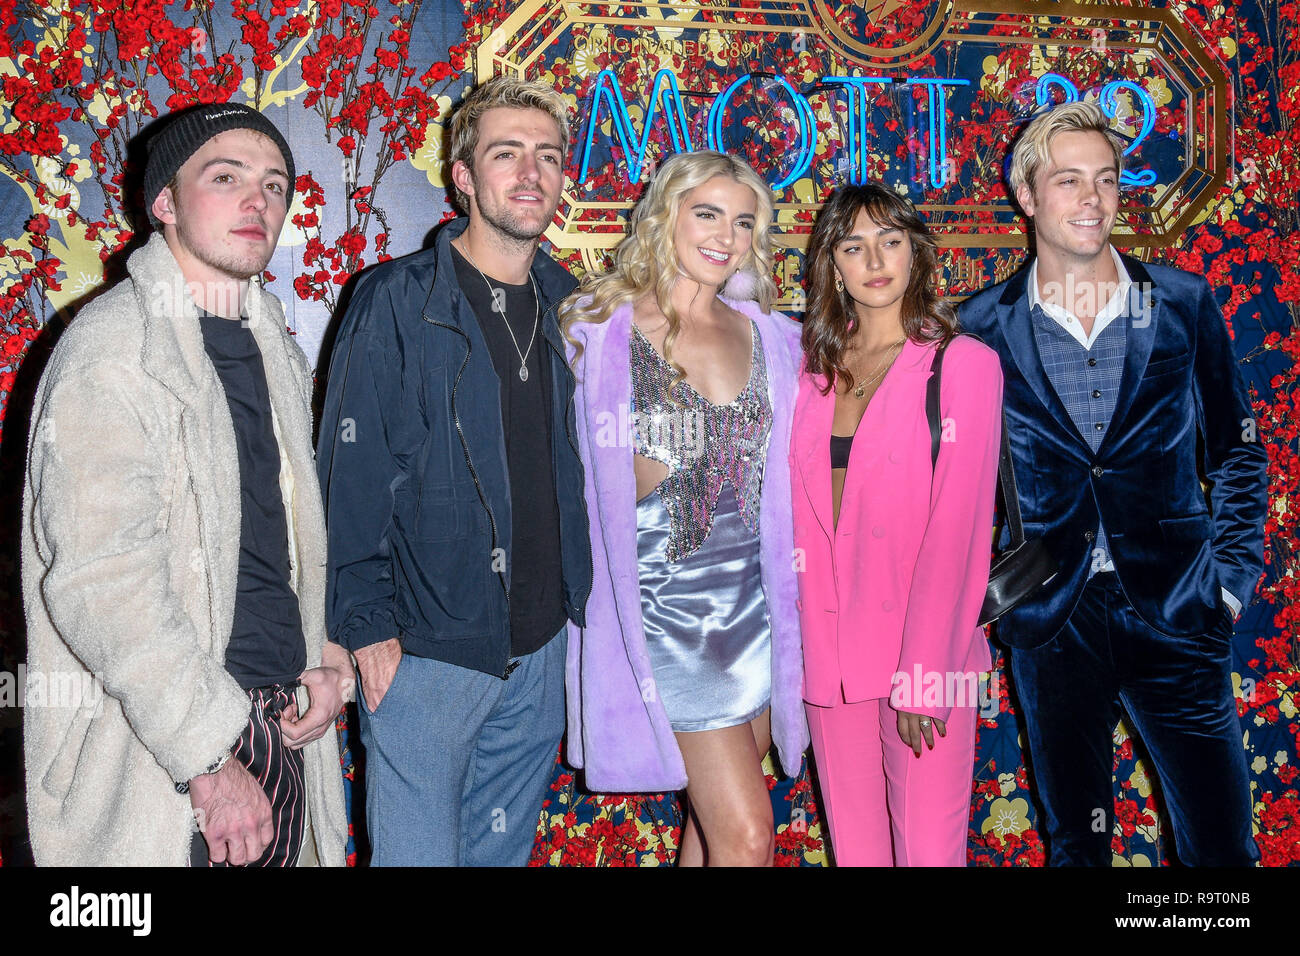 Ellington Ratliff And Riker Lynch High Resolution Stock Photography And Images Alamy